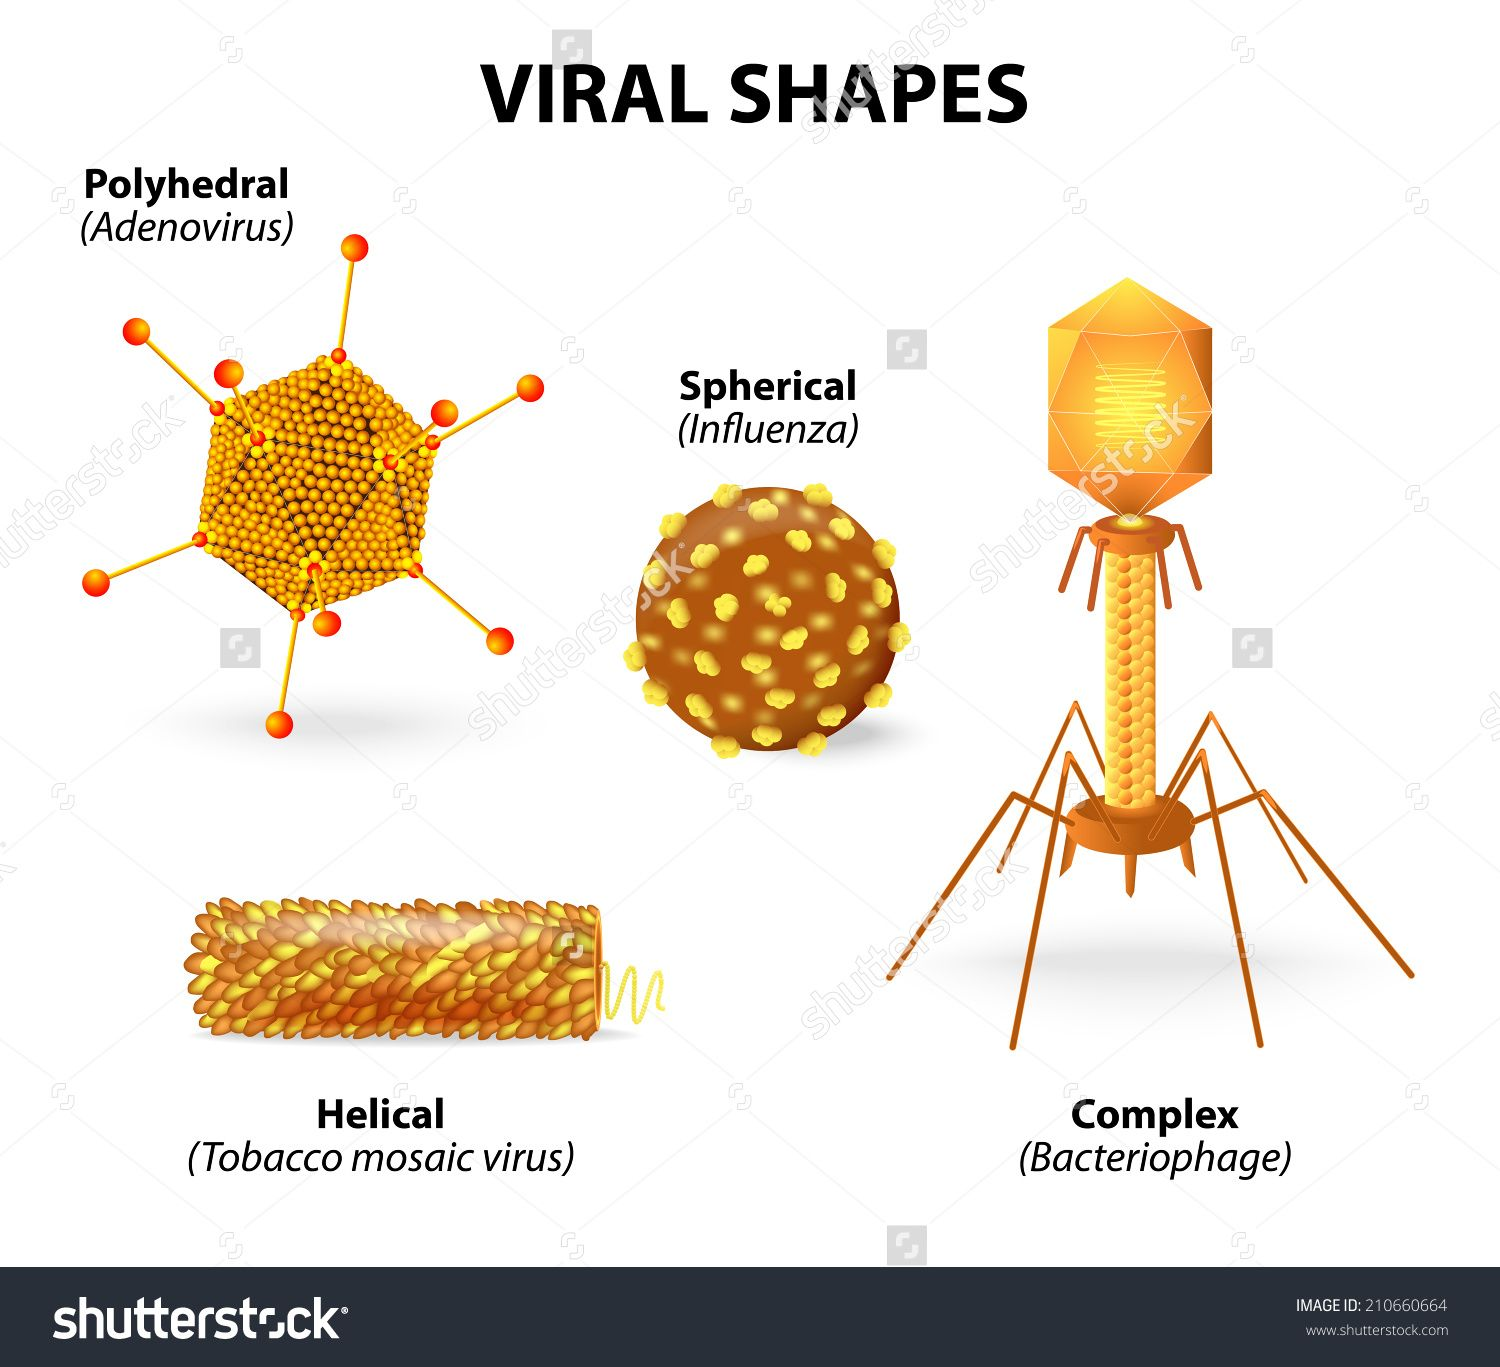 Viral Shapes Vector Illustration Showing That There Are Many